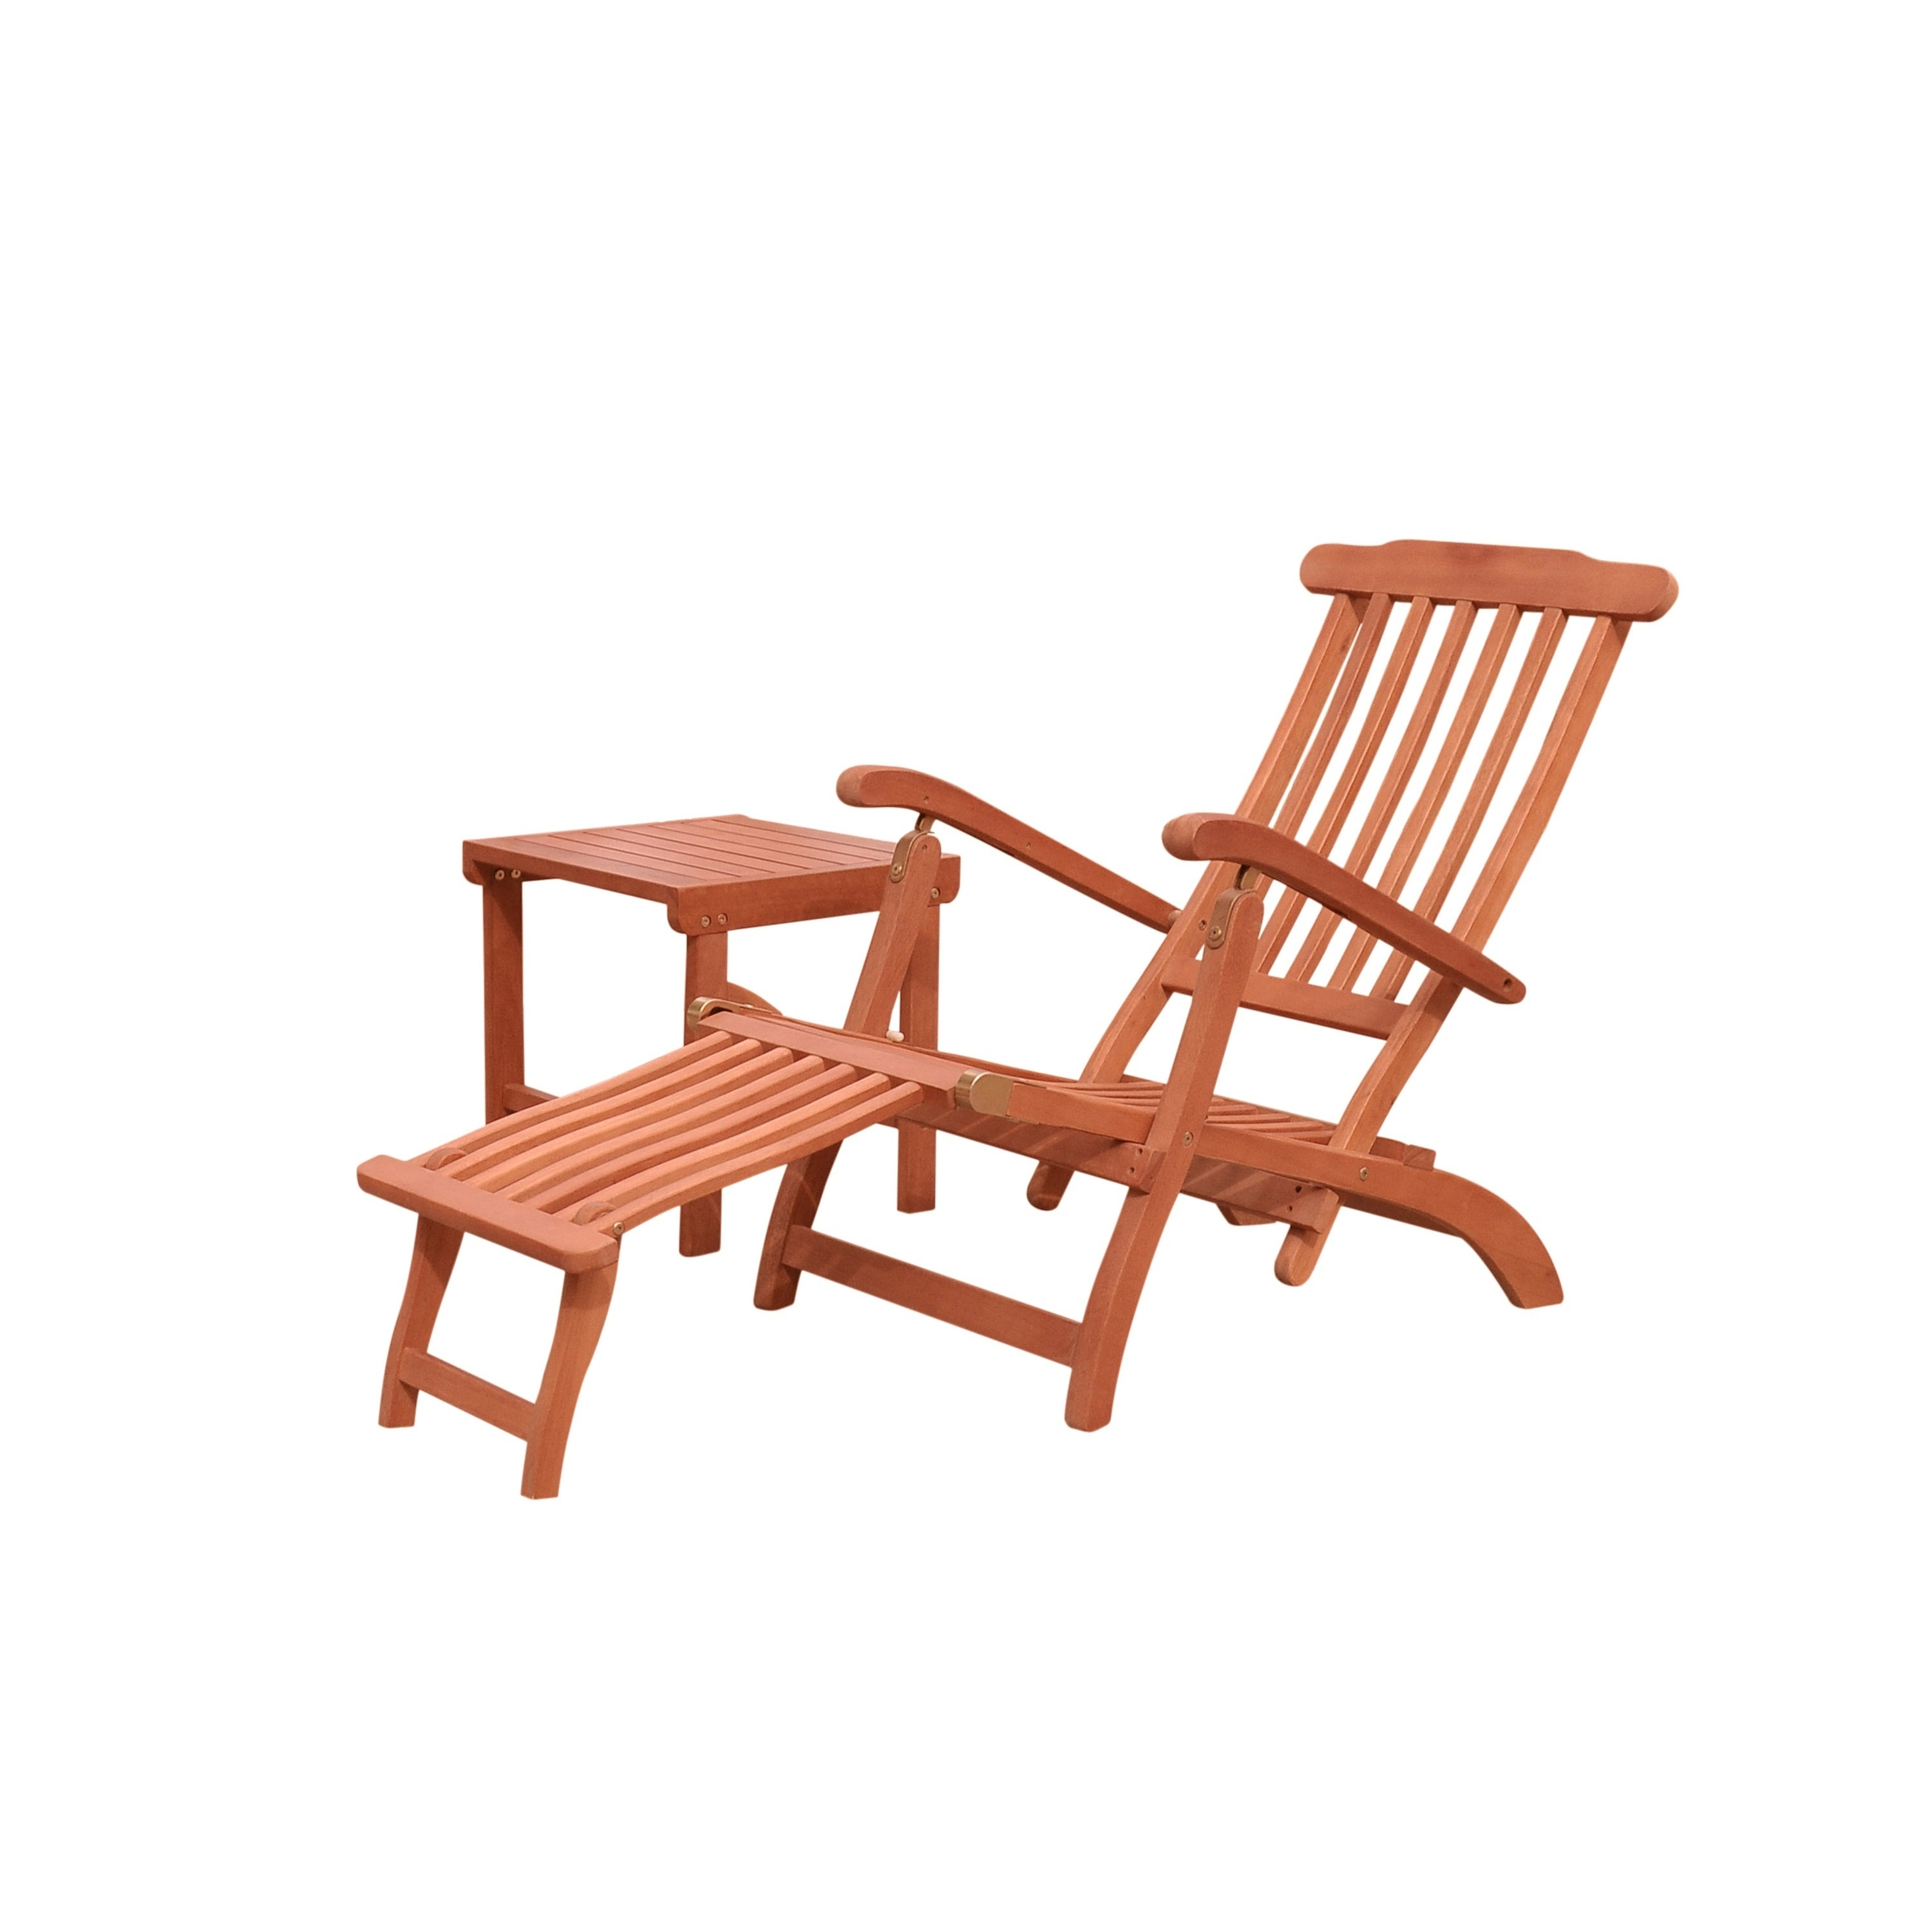 Popular Havenside Home Surfside Outdoor Lounge Chairs With Regard To Havenside Home Surfside Wood Outdoor Patio Chaise Lounge Set (View 15 of 25)